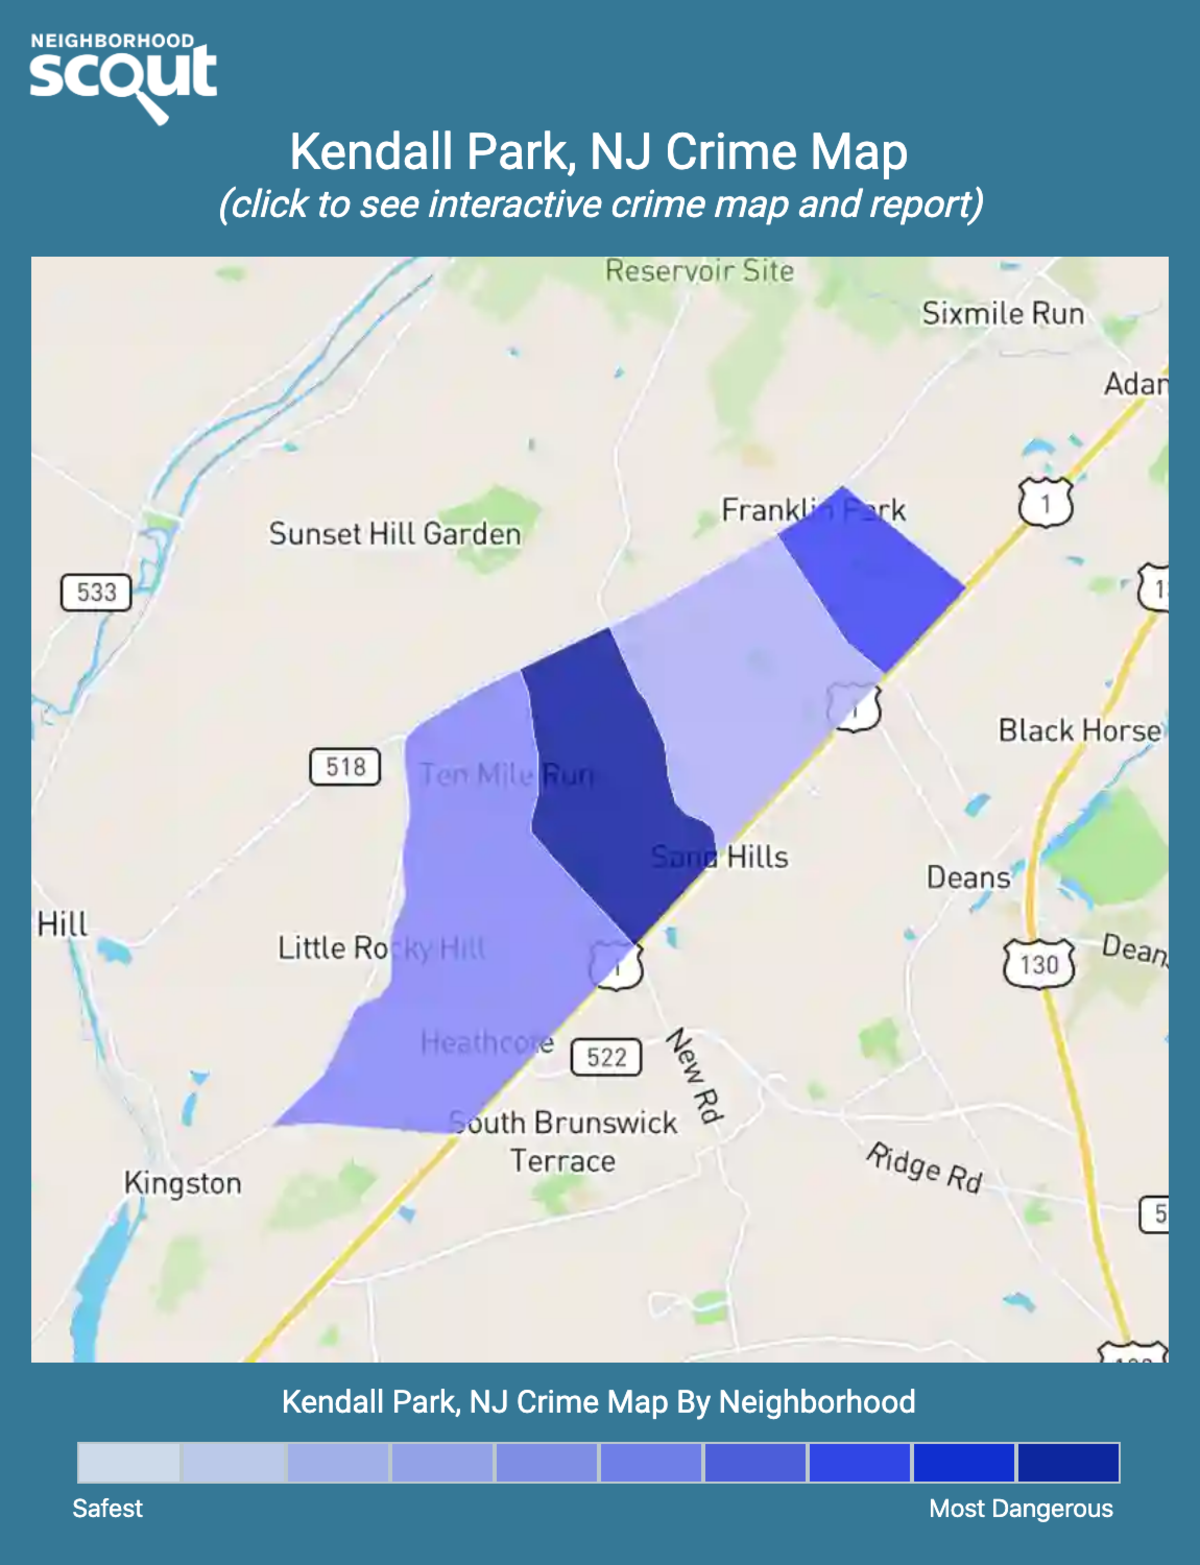 Kendall Park, New Jersey crime map